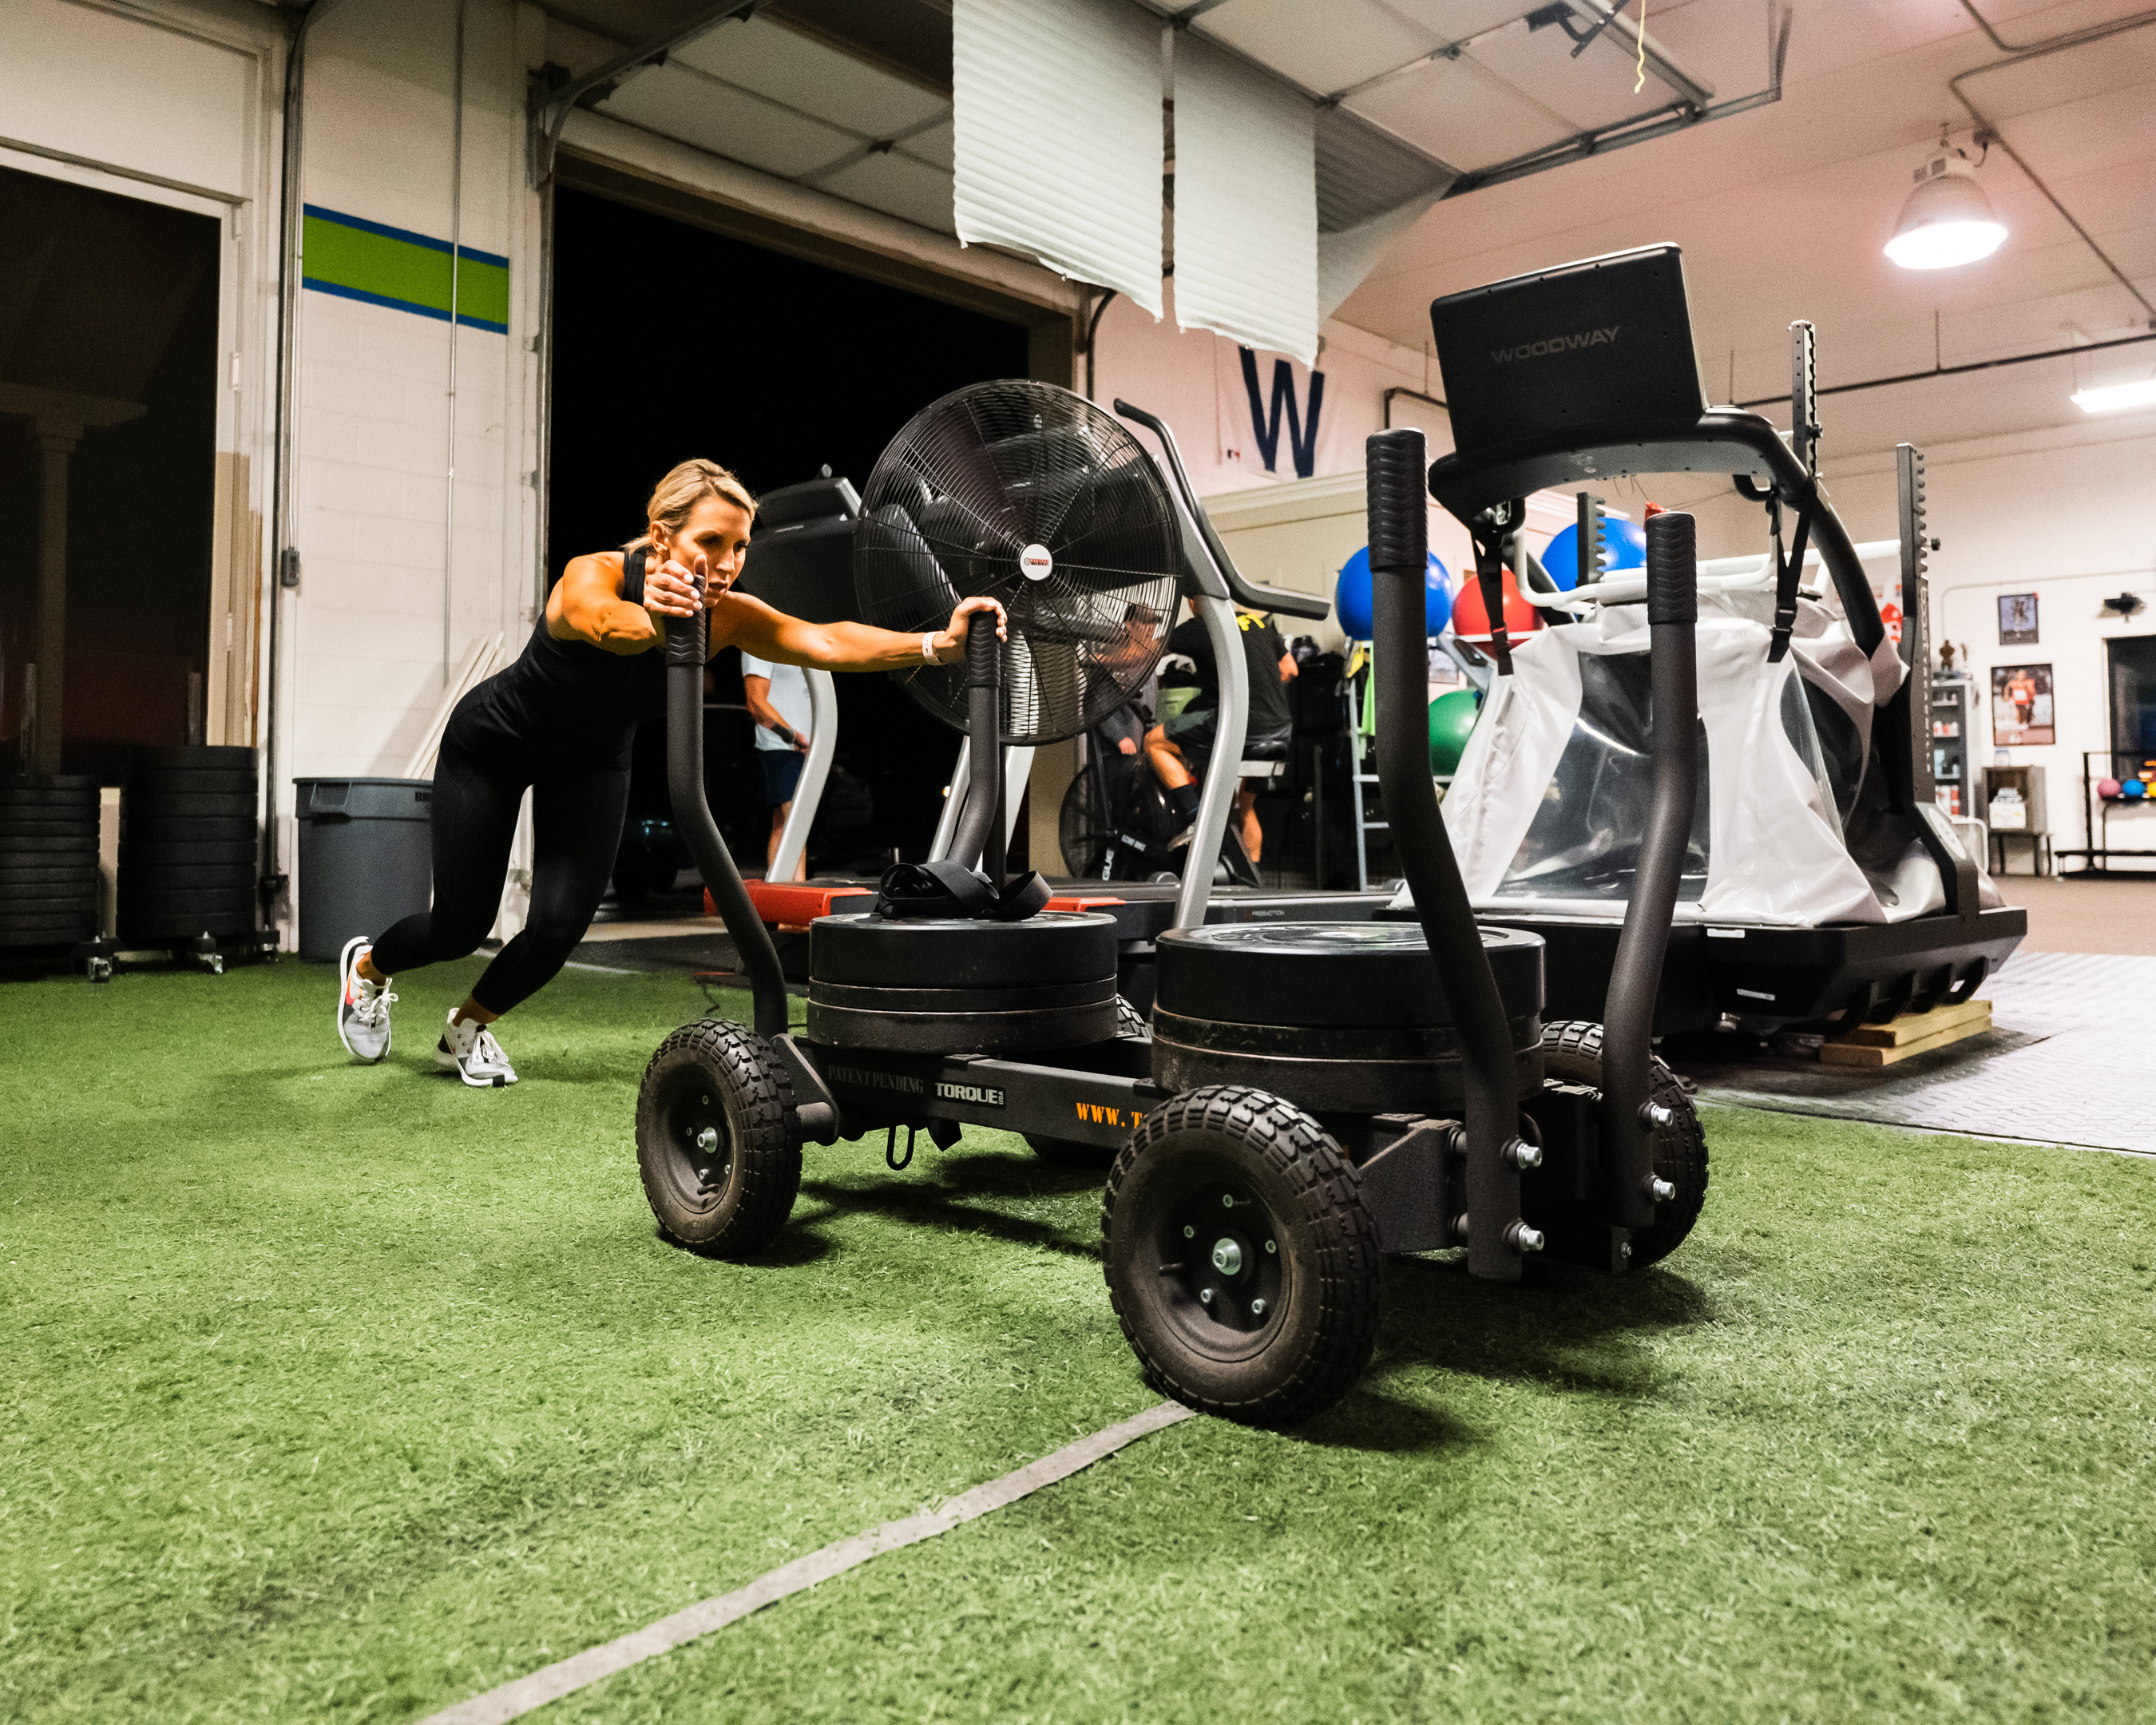 Gym equipment at Prevail Grand Rapids personal training and gym located in Ada, Michigan.